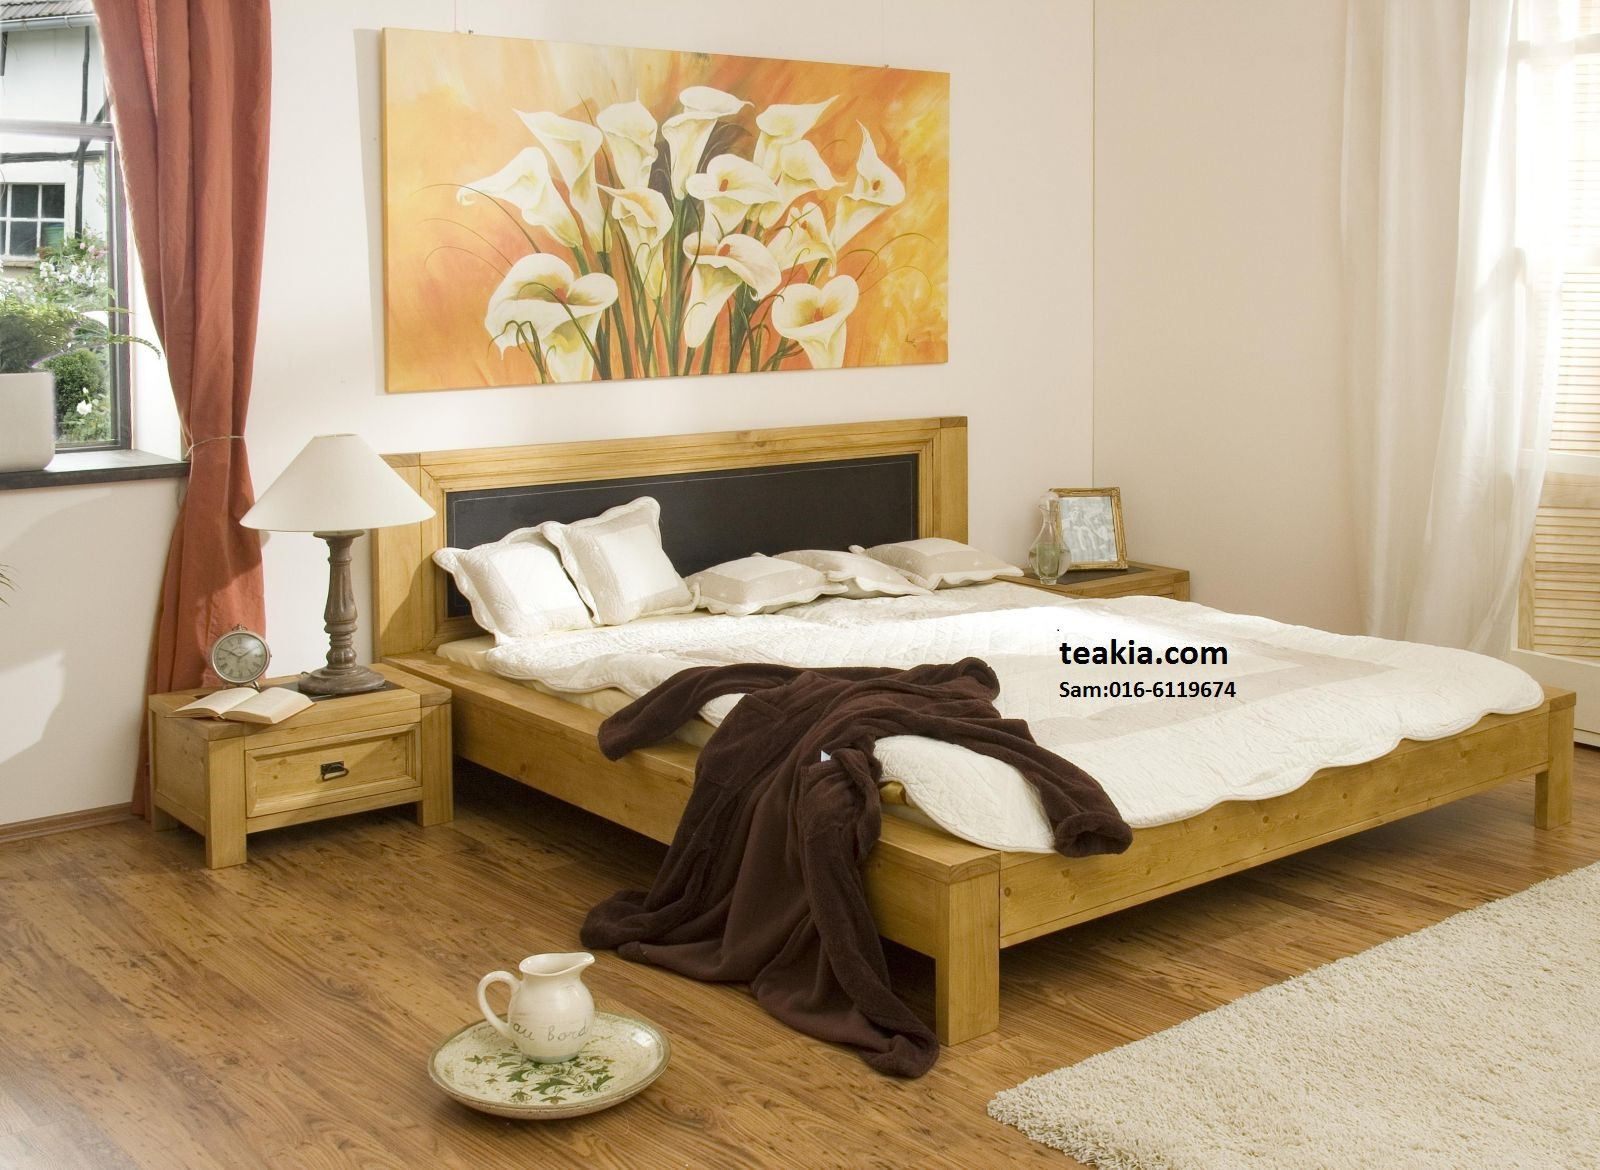 feng shui bedroom furniture. Feng Shui Bedroom Colors To Attract Love Furniture O